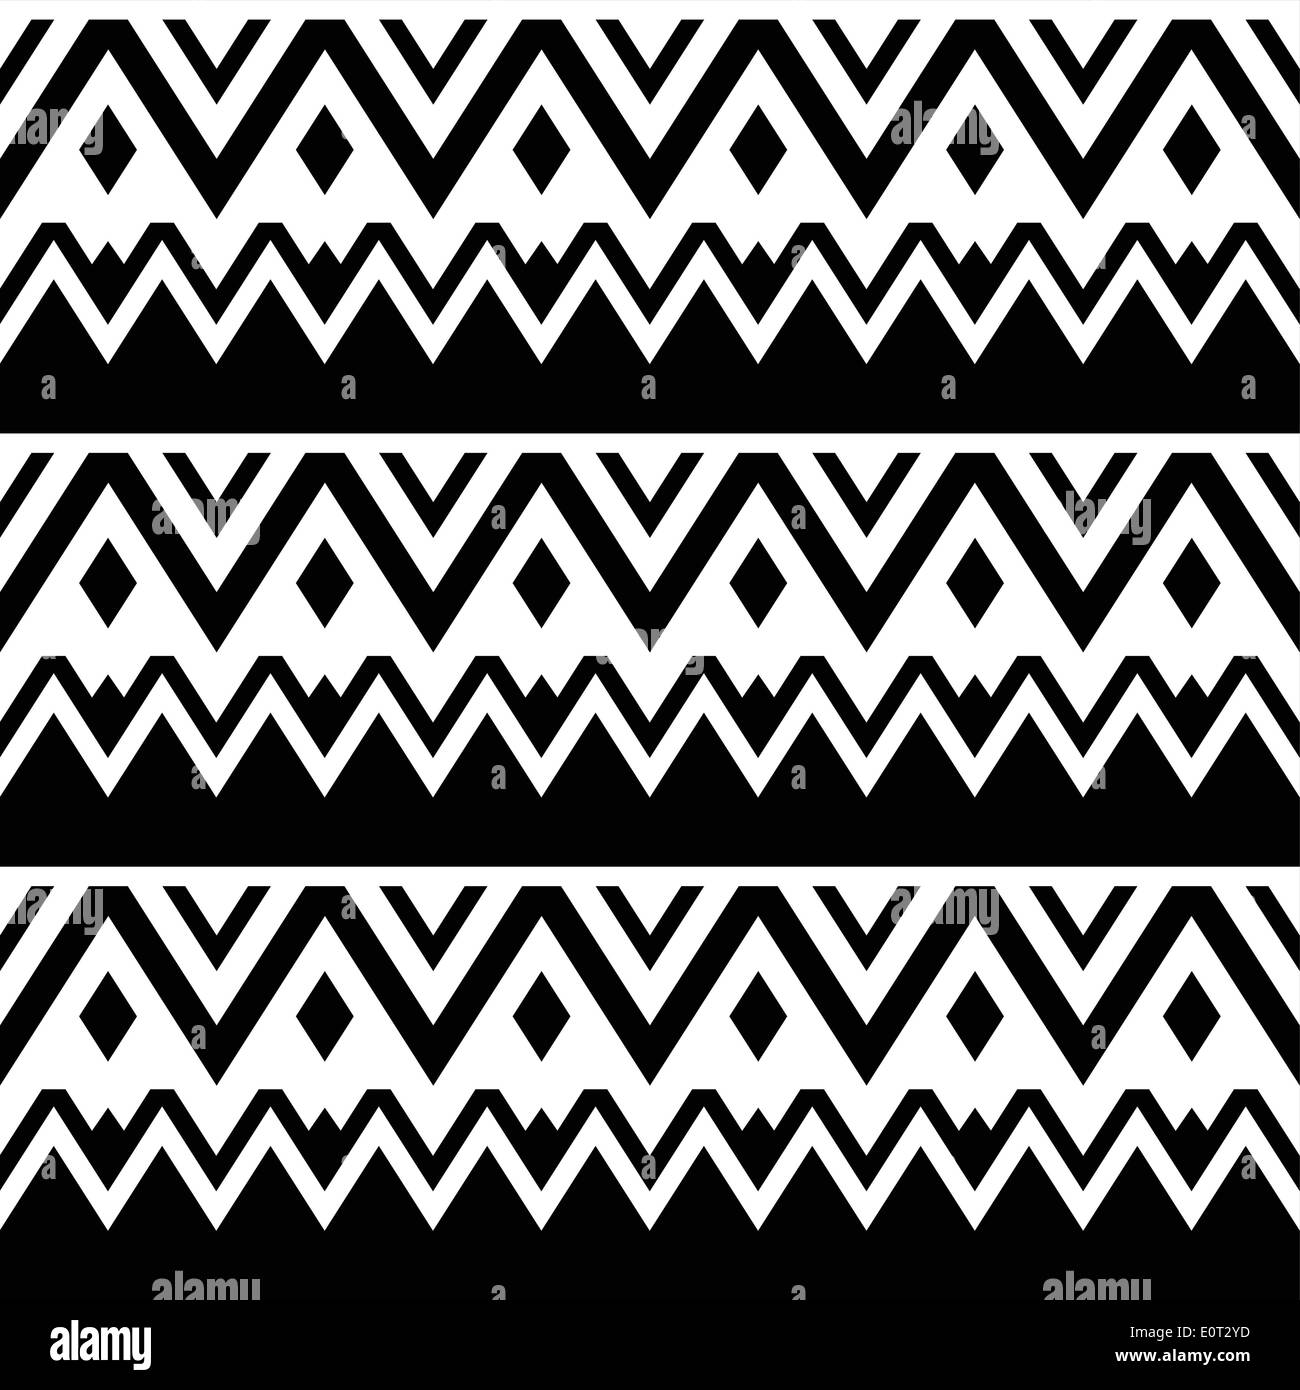 Black And White Fabric Stock Photos Amp Black And White